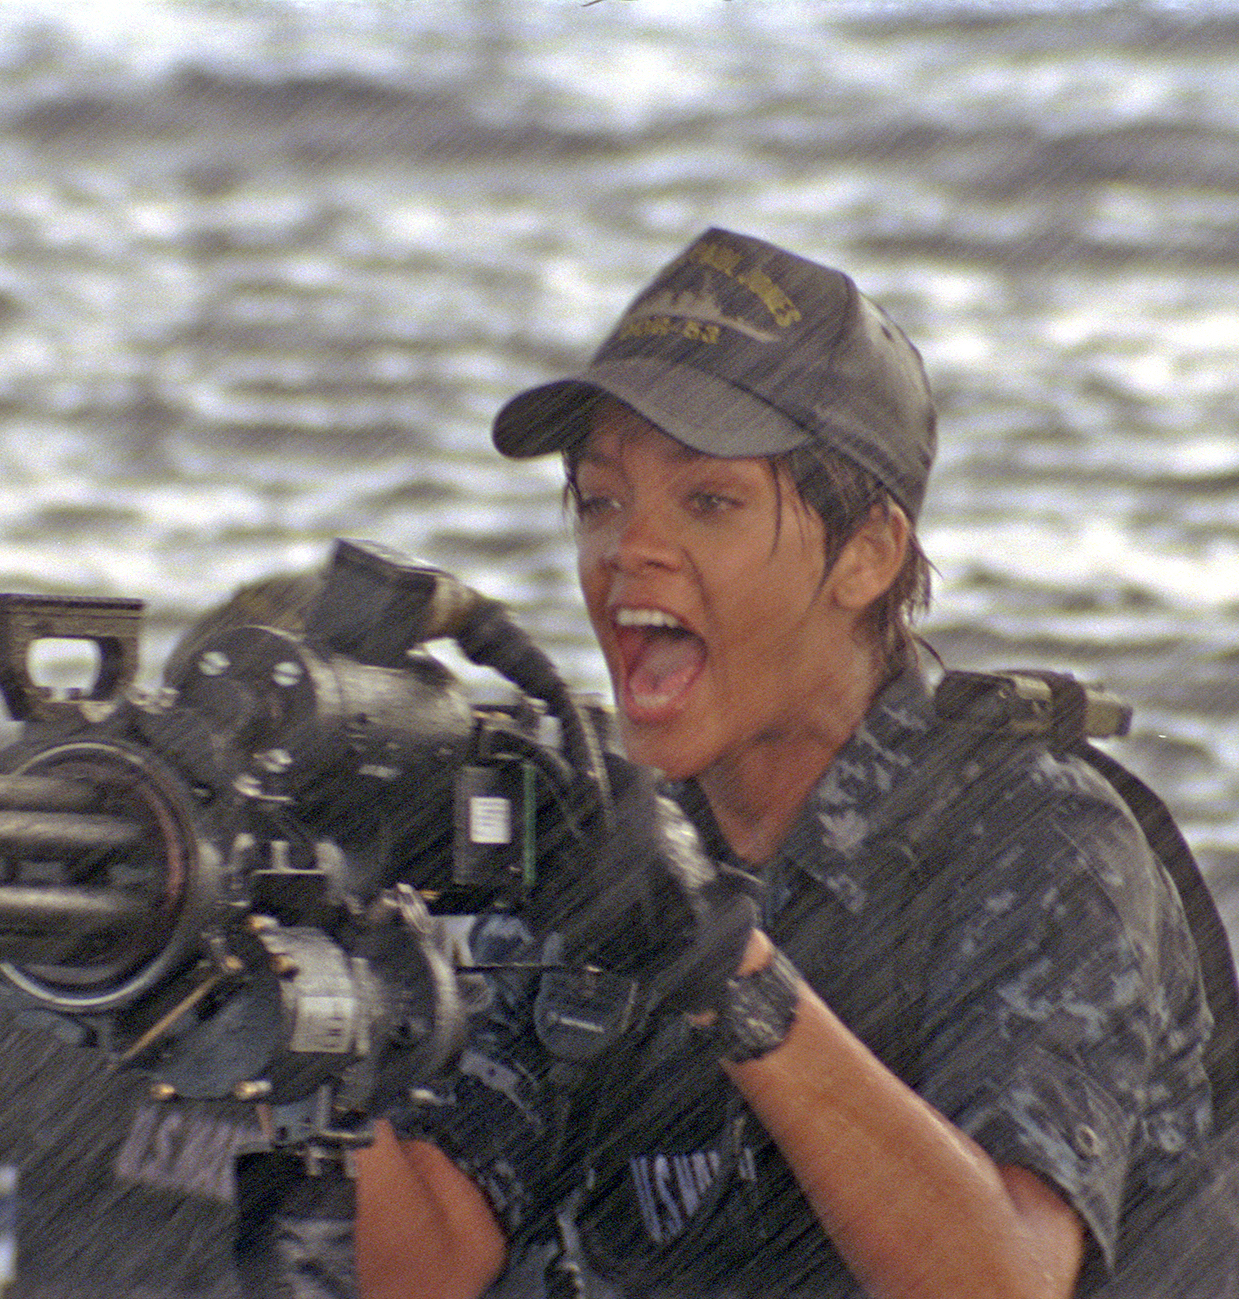 battleship movie image rihanna 02 10 Movies You Didn't Know Were Outrageously Expensive To Make